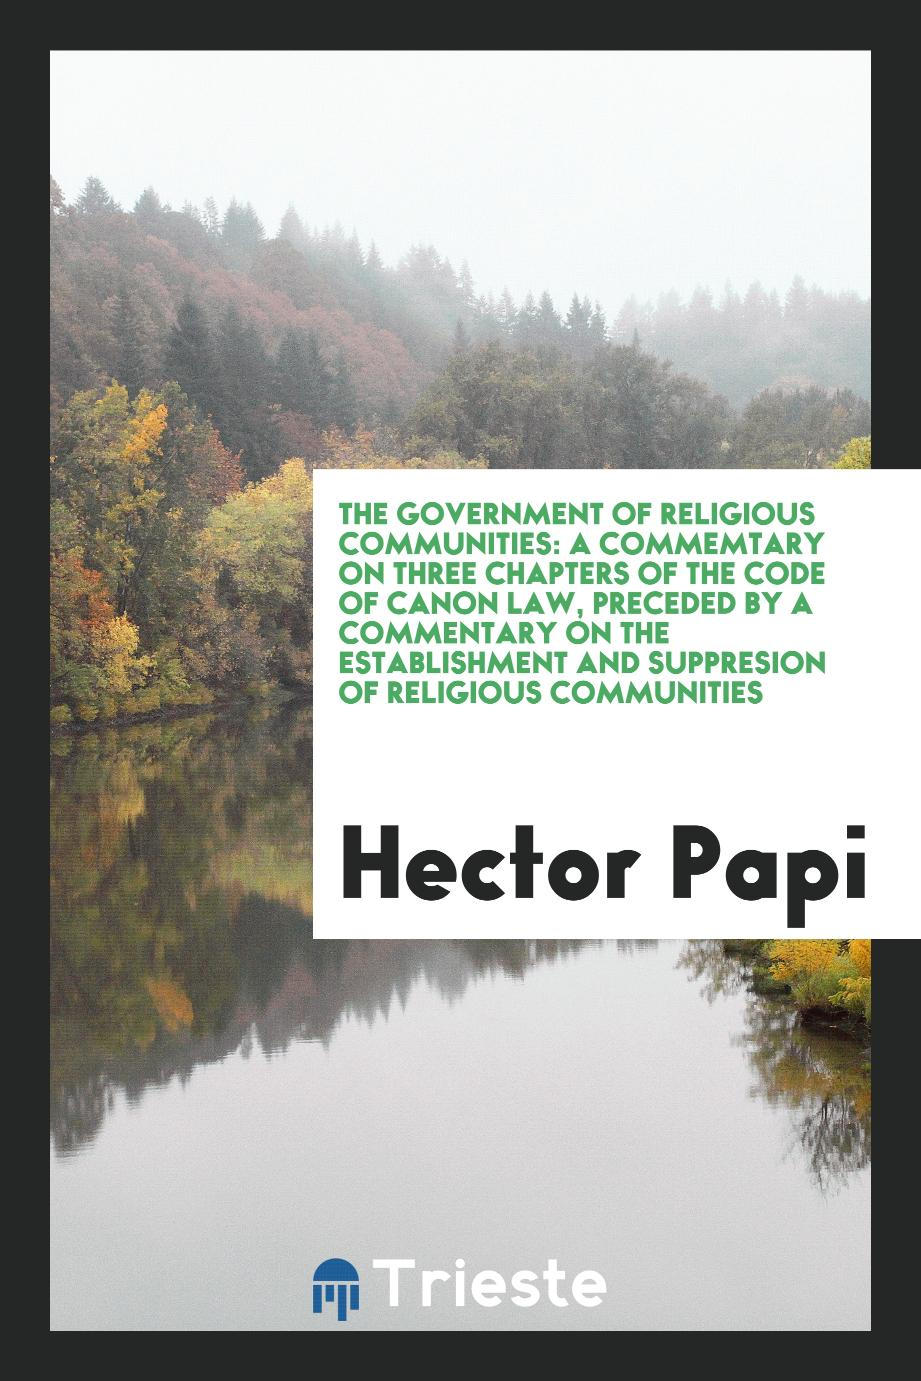 Hector Papi - The government of religious communities: a commemtary on three chapters of the Code of canon law, preceded by a commentary on the establishment and suppresion of religious communities